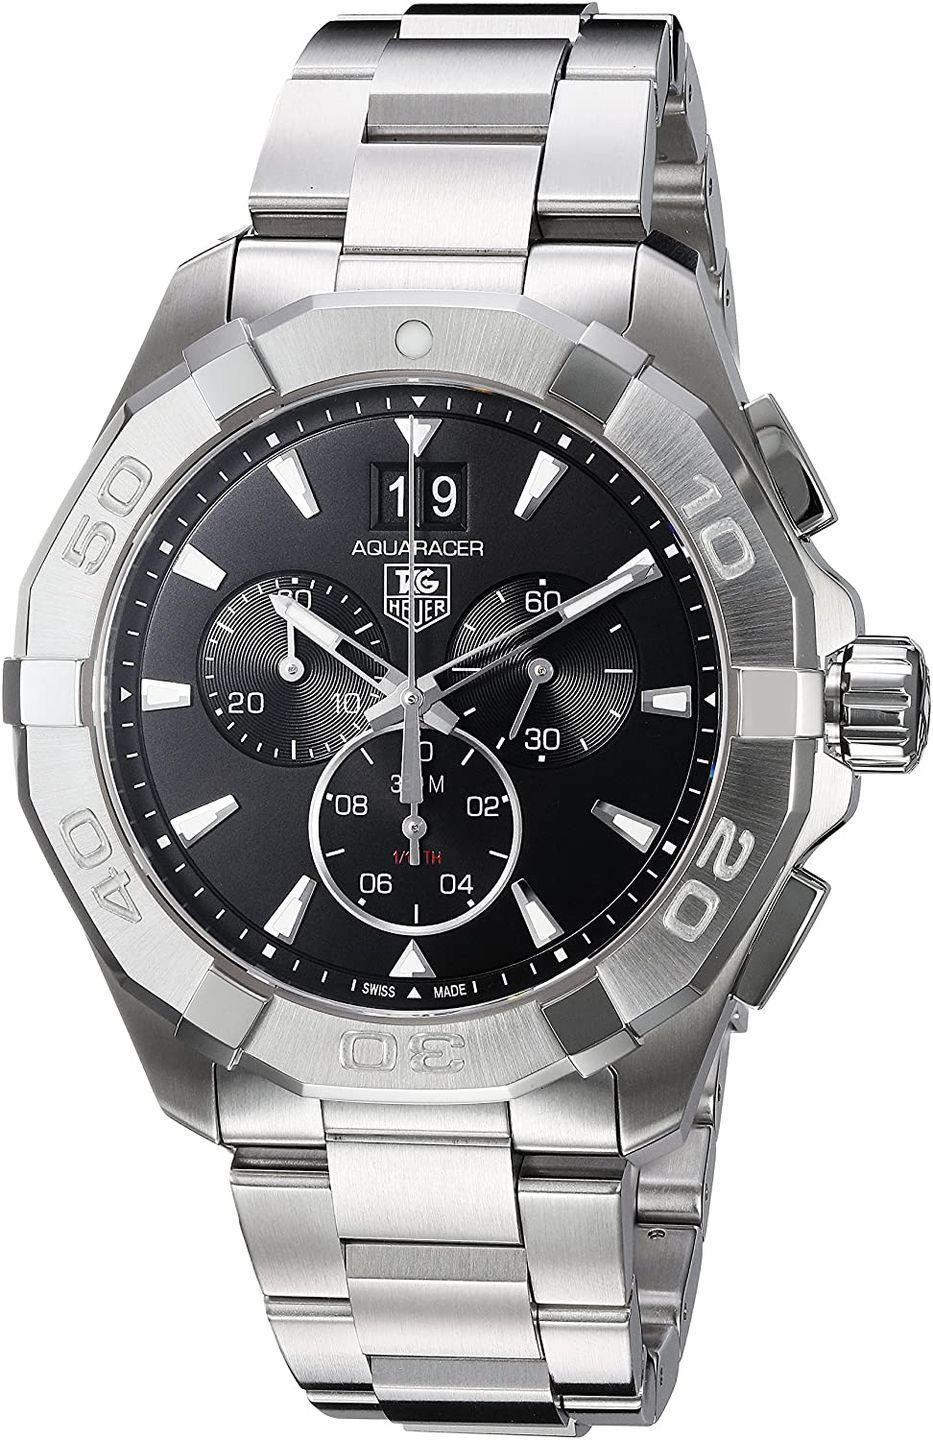 """<p>Chronograph 43mm</p><p><a class=""""link rapid-noclick-resp"""" href=""""https://www.amazon.co.uk/TAG-Heuer-CAY1110-BA0927/dp/B019RAGAVG?tag=hearstuk-yahoo-21&ascsubtag=%5Bartid%7C1930.g.34617551%5Bsrc%7Cyahoo-uk"""" rel=""""nofollow noopener"""" target=""""_blank"""" data-ylk=""""slk:SHOP"""">SHOP</a></p><p>As with most <a href=""""http://www.esquire.com/uk/style/watches/g32127494/best-dive-watches/"""" rel=""""nofollow noopener"""" target=""""_blank"""" data-ylk=""""slk:diving watches"""" class=""""link rapid-noclick-resp"""">diving watches</a>, the Aquaracer's largest customer base is comprised of people with no intention of ever leaving dry land. Still, this tool watch remains a professional piece of kit, introduced in 2003 after its forerunner, the Aquagraph, had been tested by the Navy Seals. Its viability as a diving watch proved all the more impressive given it was a chronograph – ie: it had moving parts to go wrong. Setting the standard in design and appearance ever since.</p><p>£1,550; <a href=""""https://www.amazon.co.uk/TAG-Heuer-CAY1110-BA0927/dp/B019RAGAVG"""" rel=""""nofollow noopener"""" target=""""_blank"""" data-ylk=""""slk:amazon.co.uk"""" class=""""link rapid-noclick-resp"""">amazon.co.uk</a></p>"""